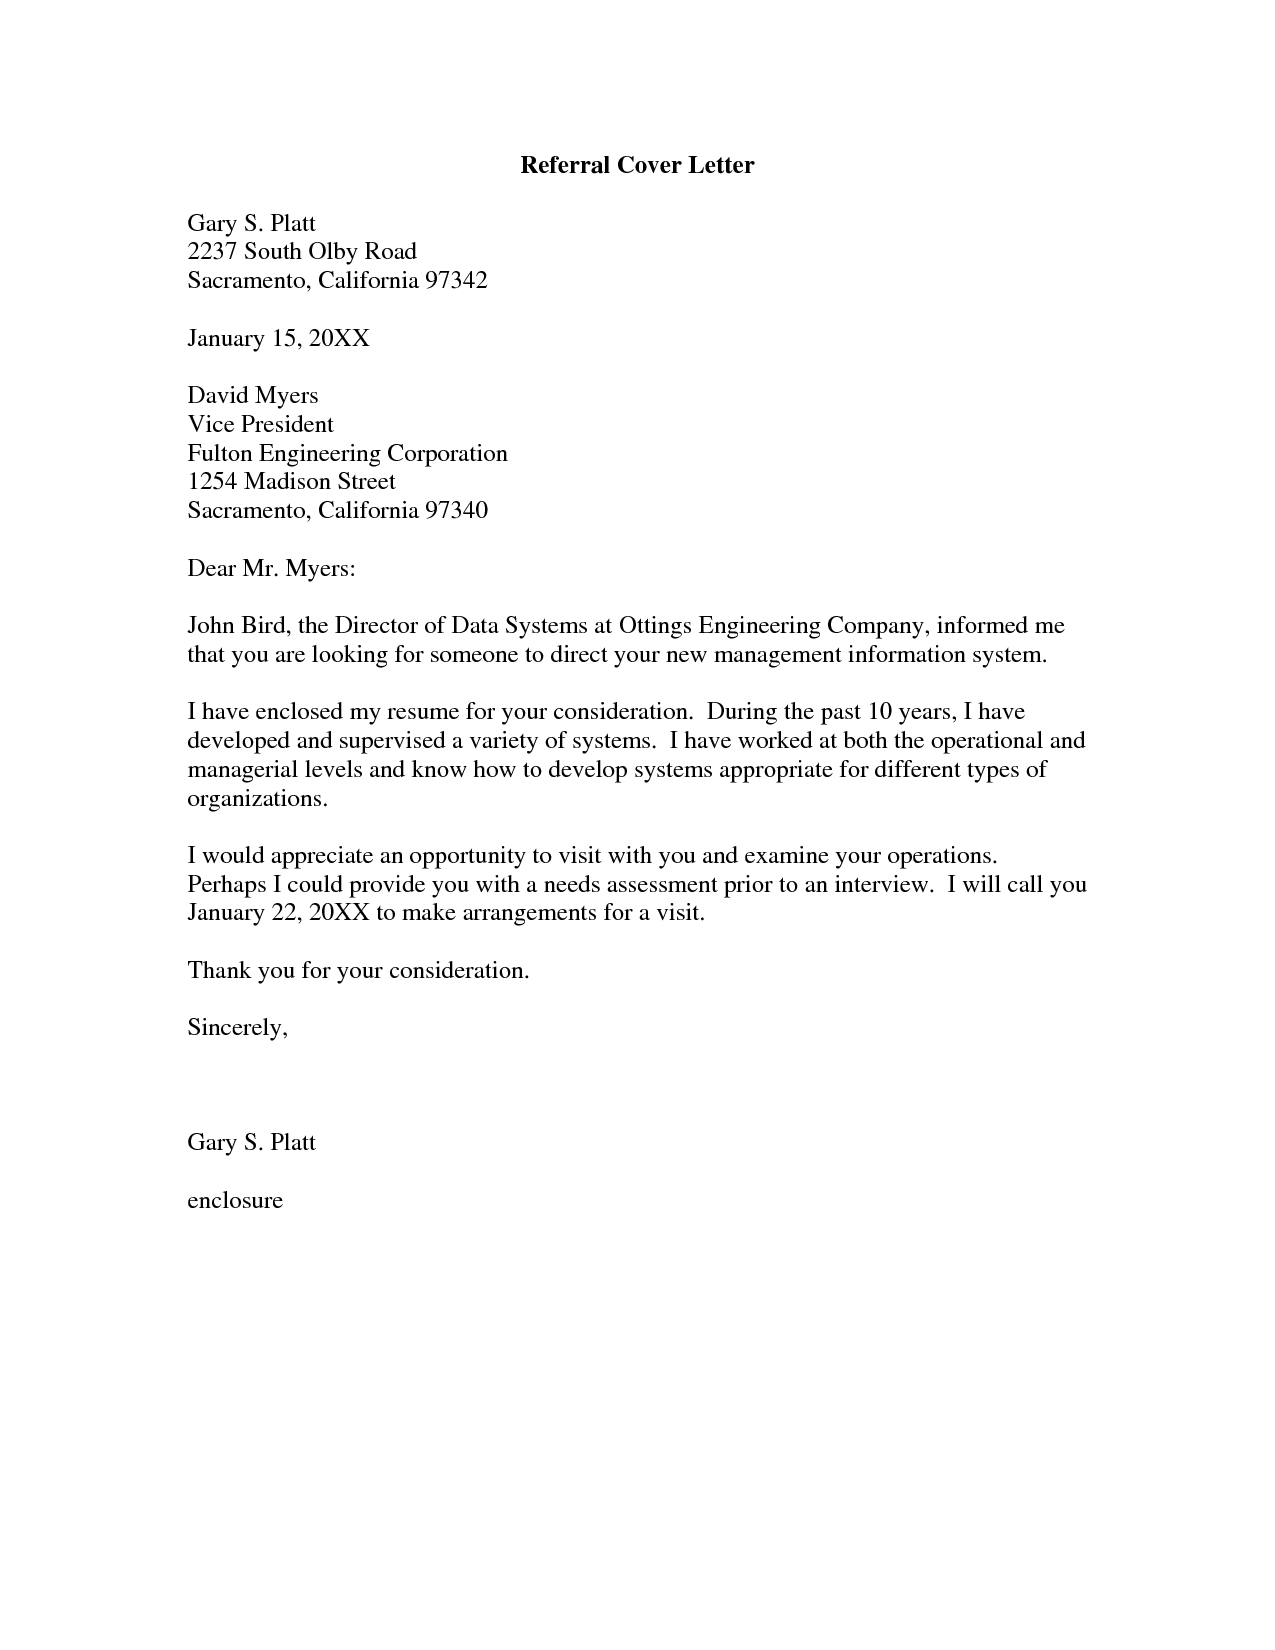 Cover Letter With Referral Cover Letter To Referral For Resume How To Include A Referral In